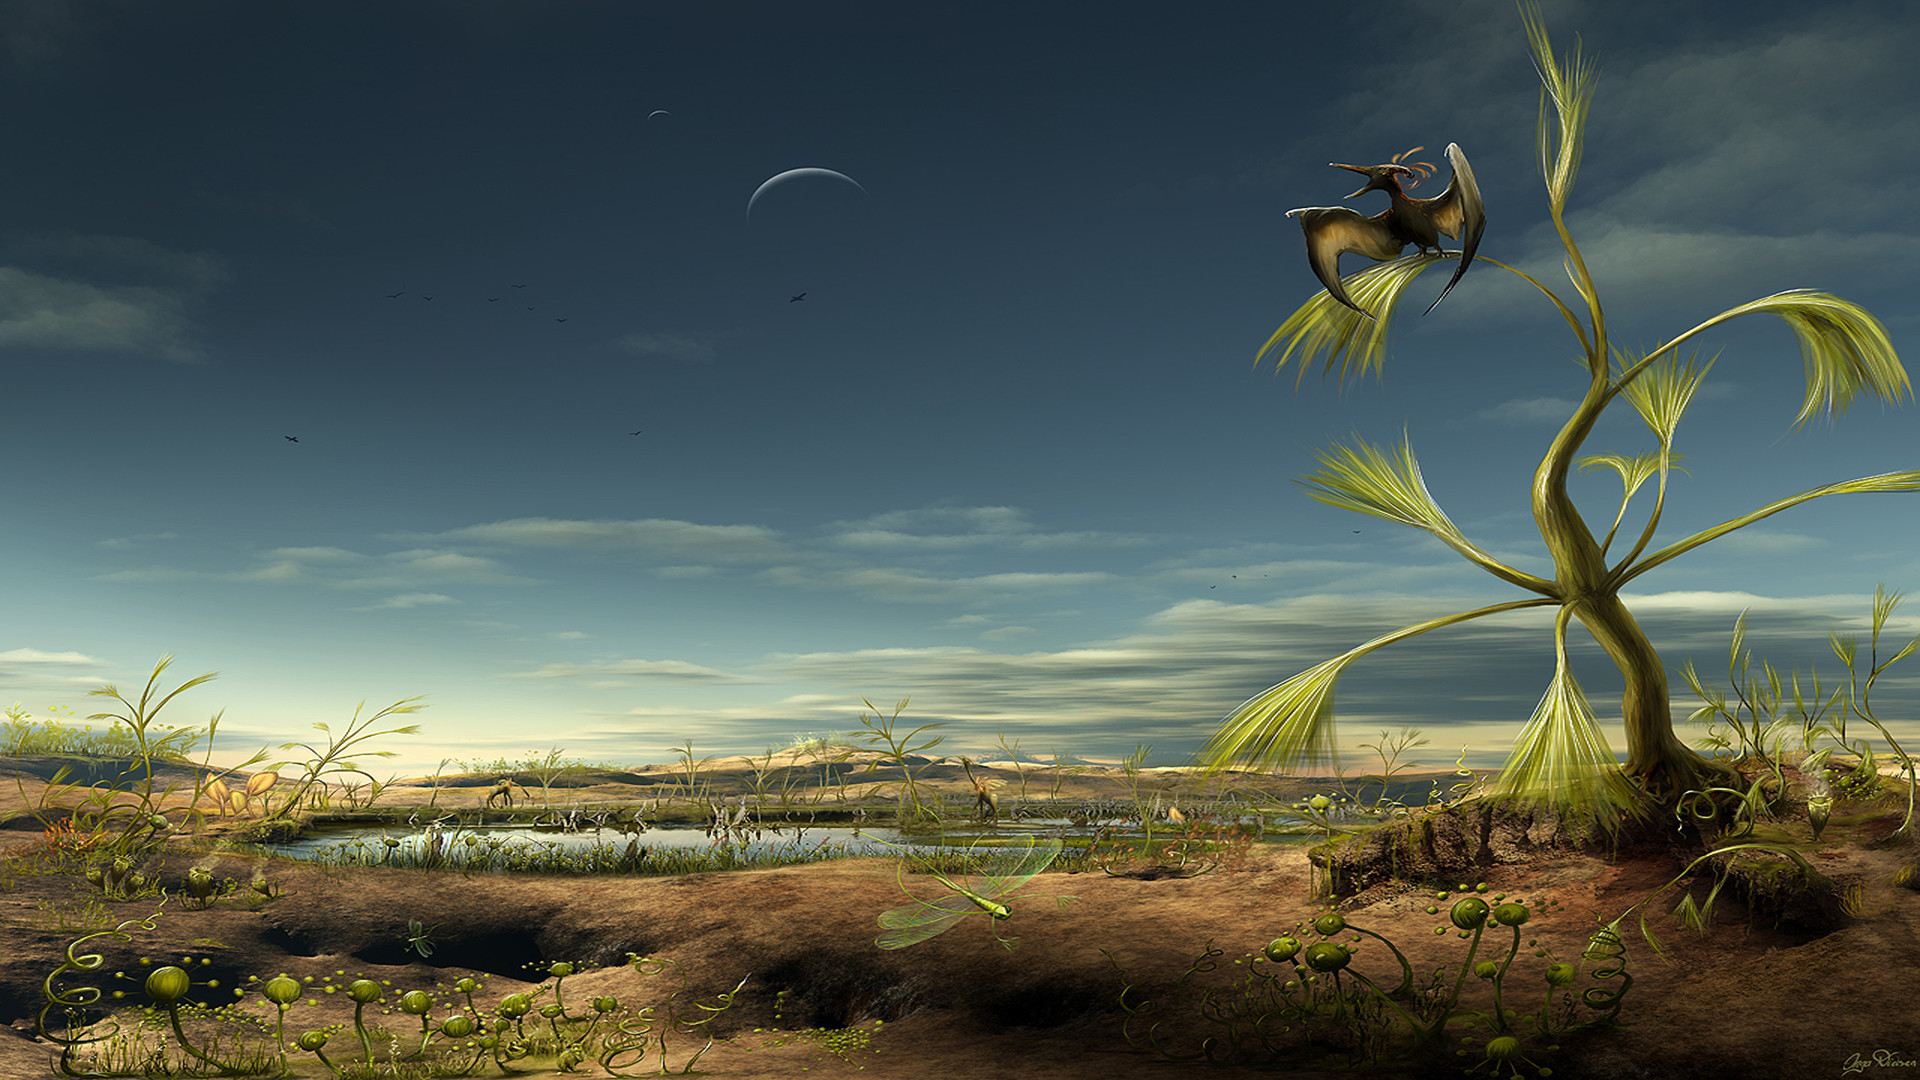 Surrealism Hd Wallpapers Backgrounds High Definition: Surreal Art Wallpaper (65+ Images